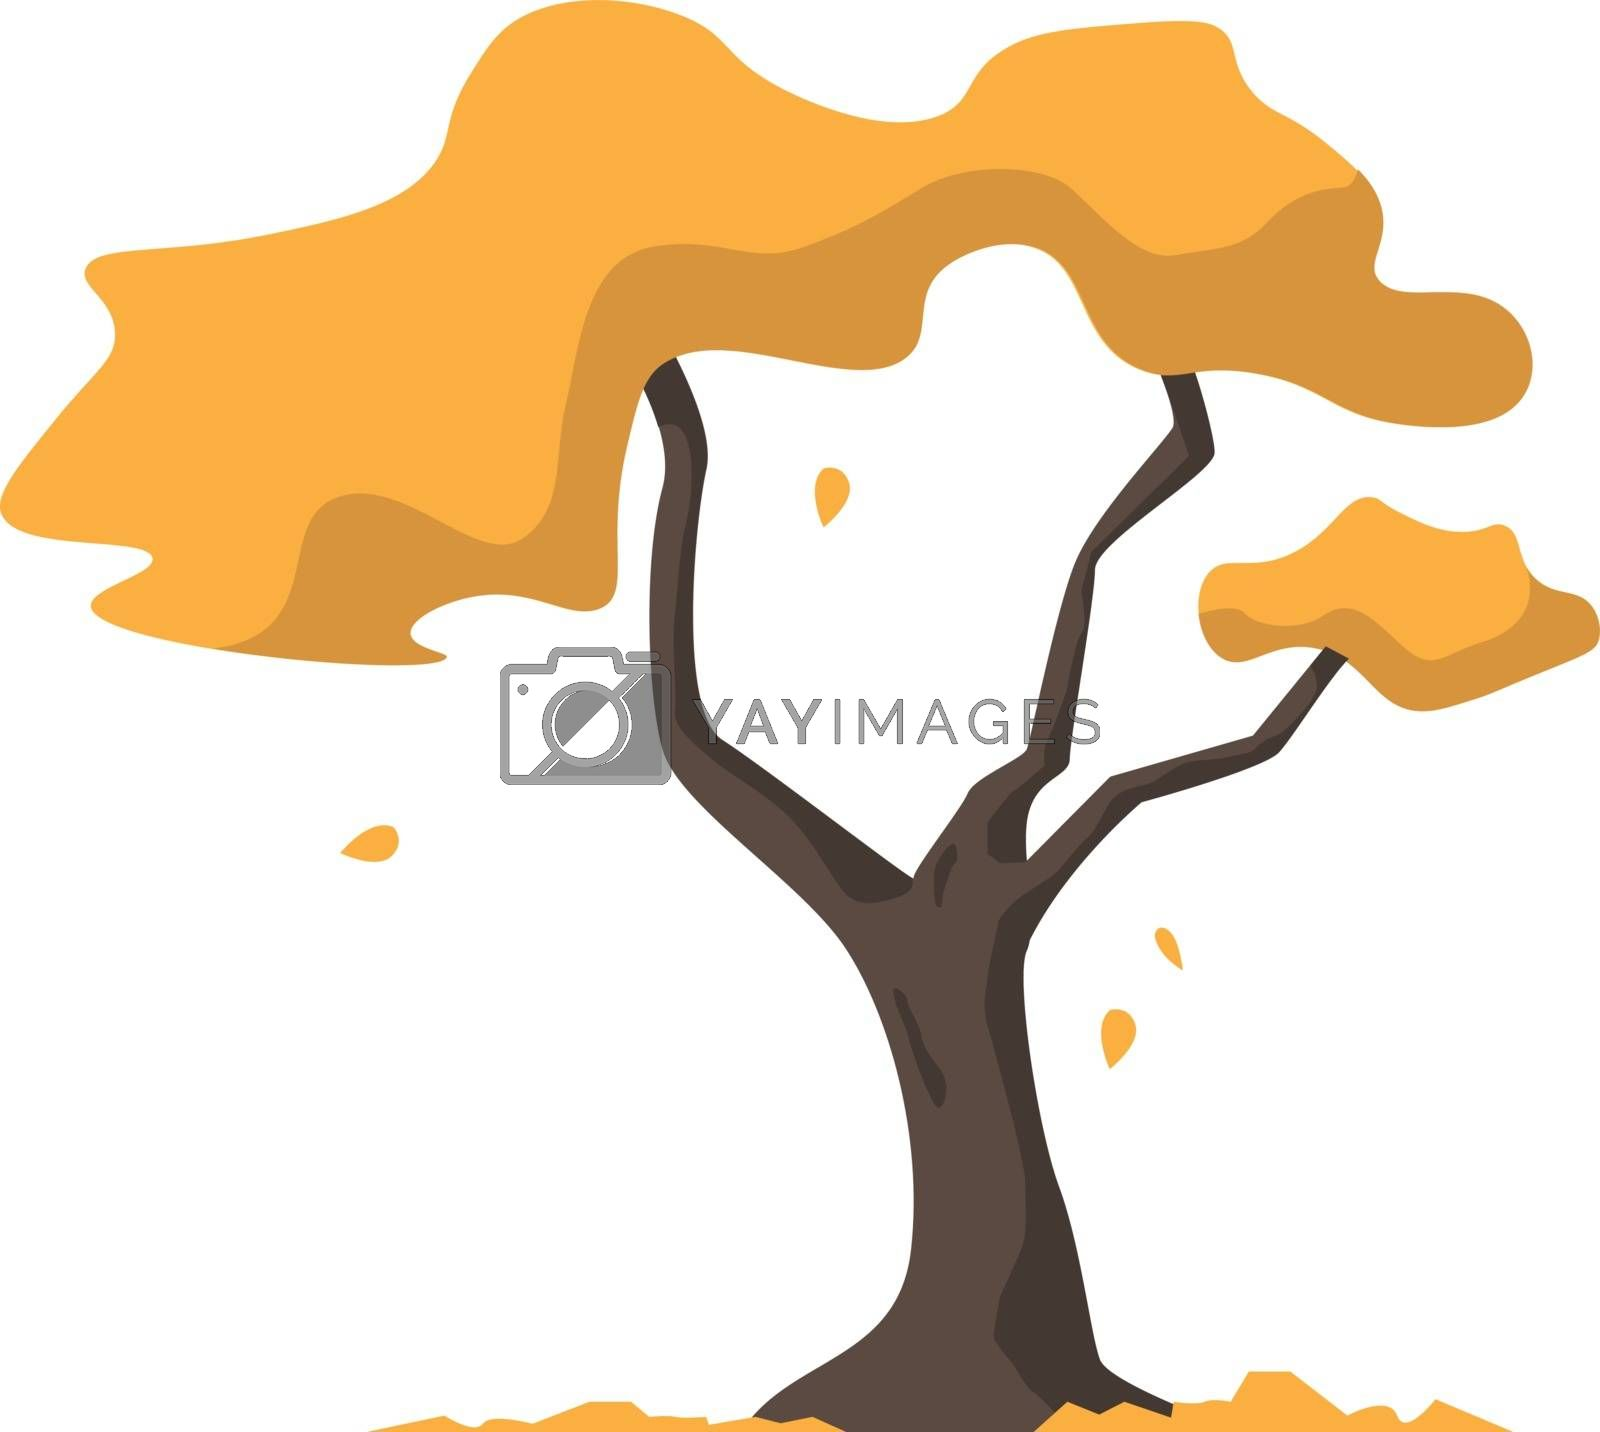 Autumn tree, illustration, vector on white background.